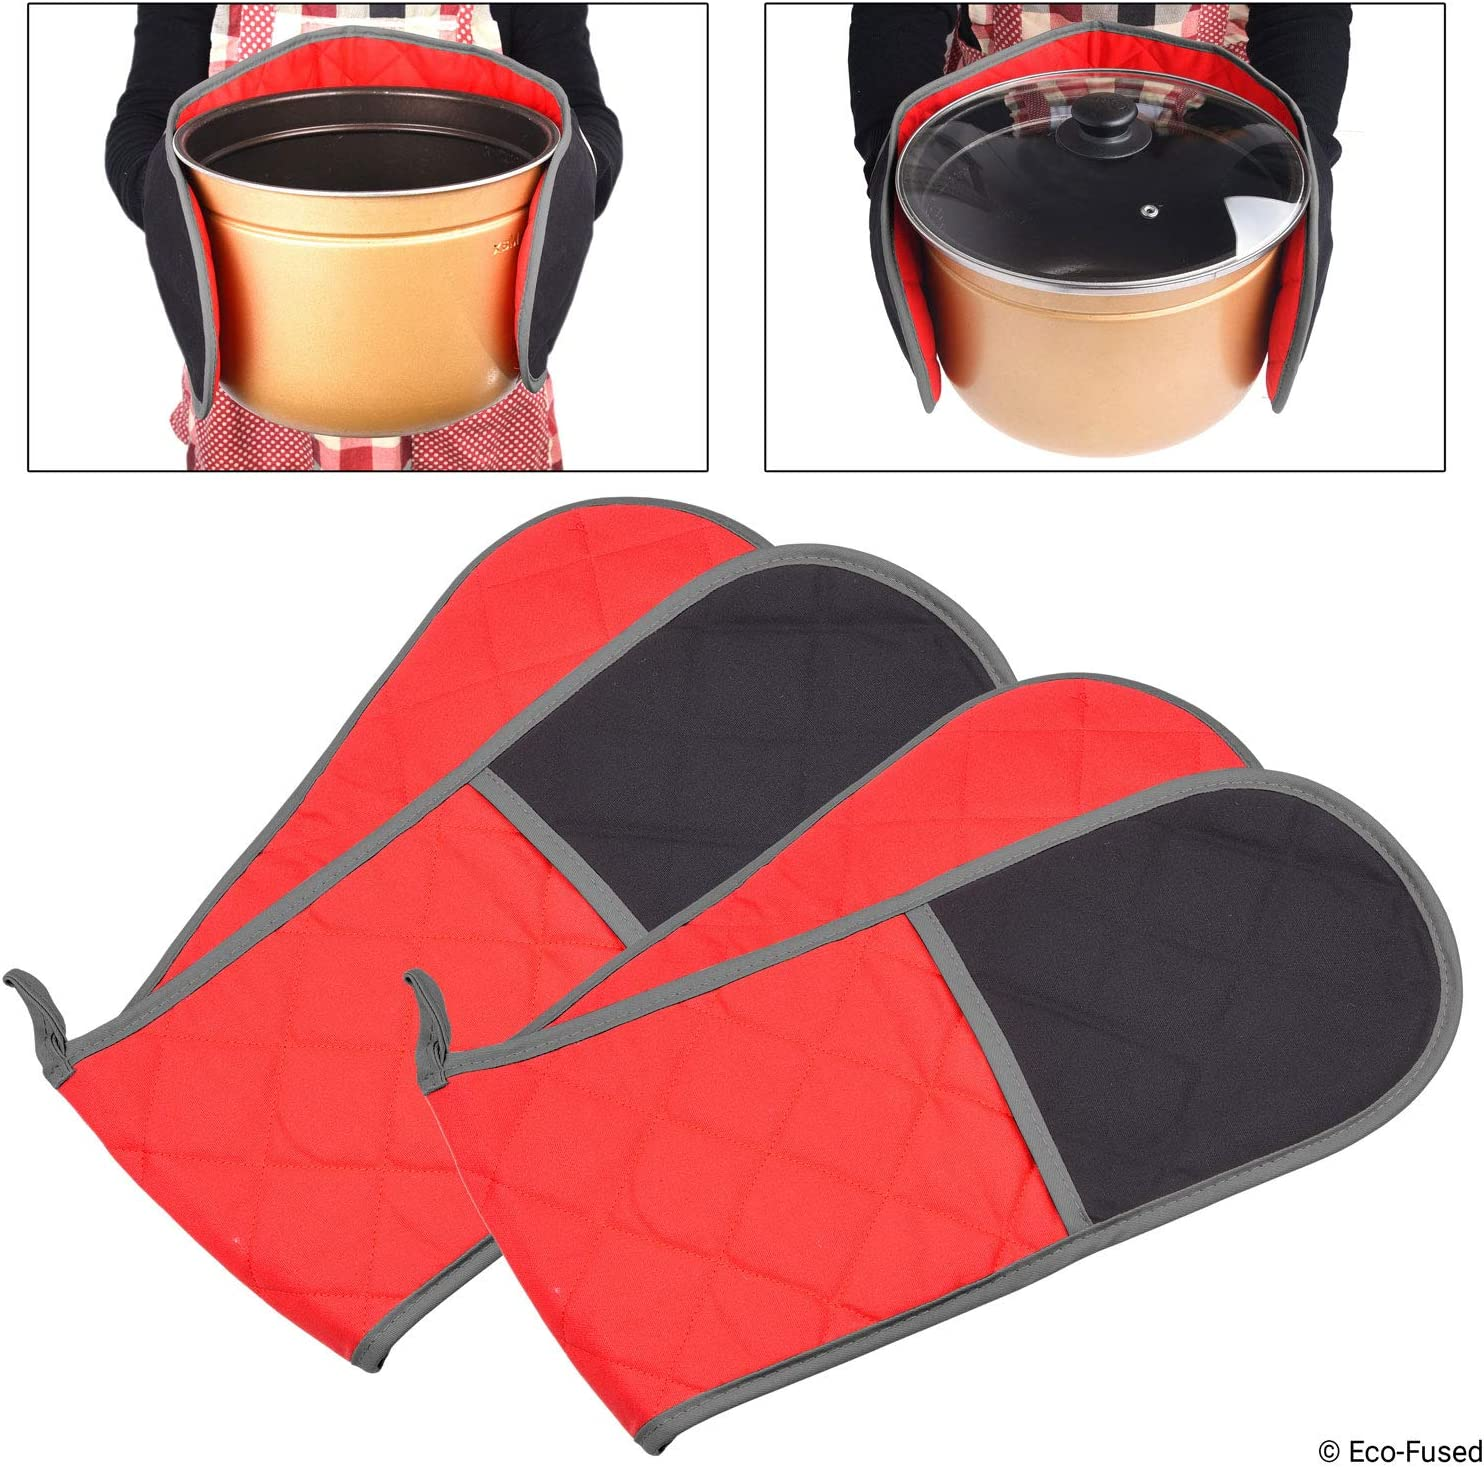 Double Oven Mitts - Set of 2 - Wrap and Grab Design - Protects your Hands, Arms and Torso - Red and Black Quilted Cotton Lining with Taupe Piping - Hanging Loop - Also Works as Utensil Pouch or Trivet